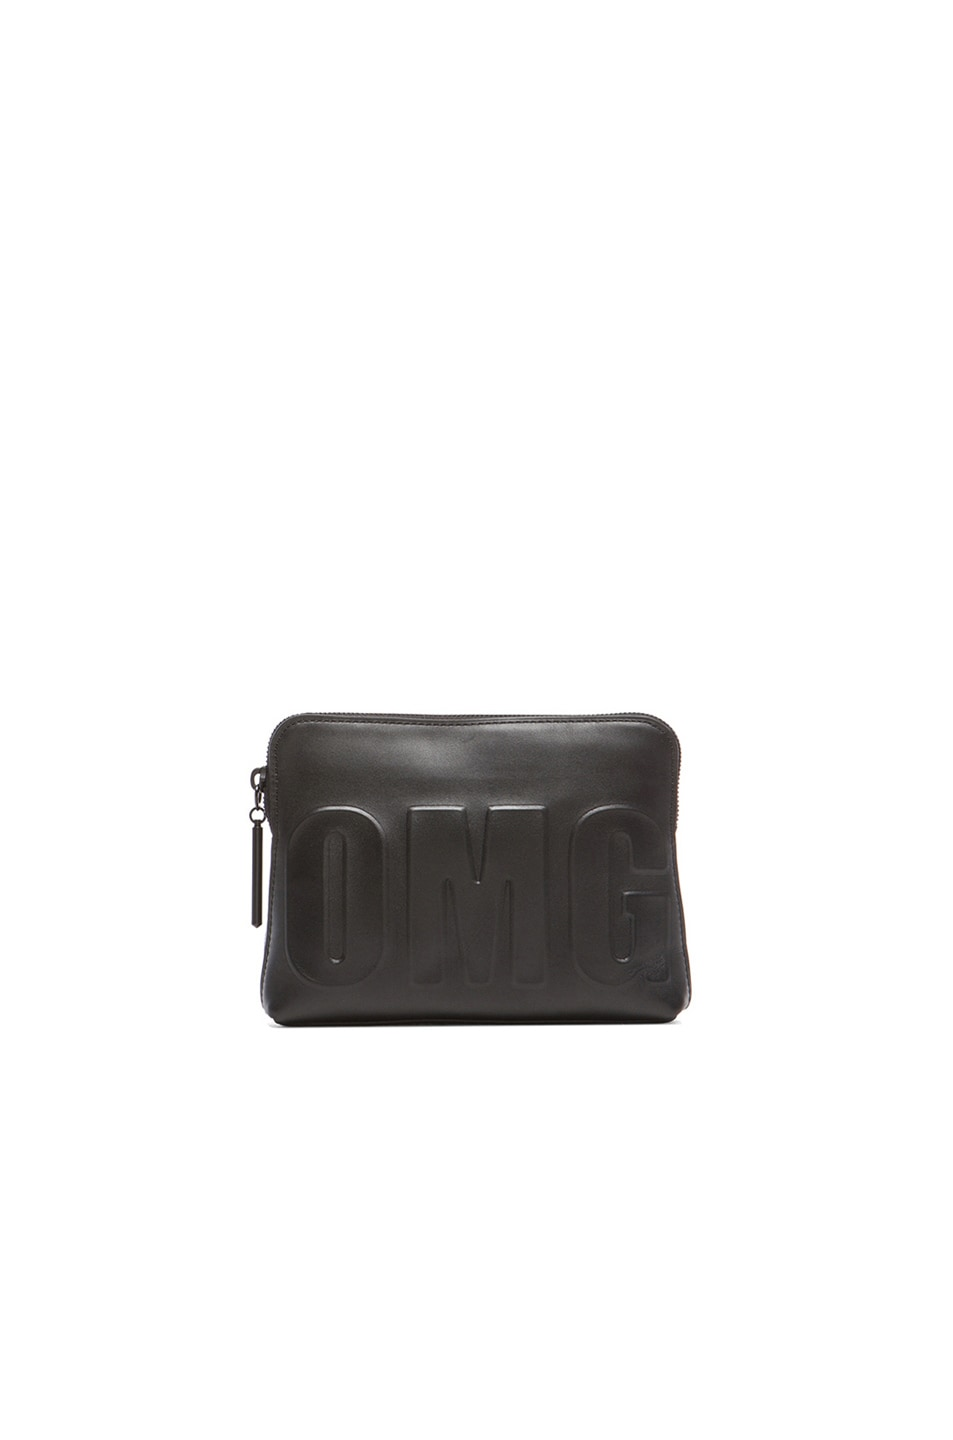 Image 1 of 3.1 phillip lim 'OMG' 31 Second Pouch in Black